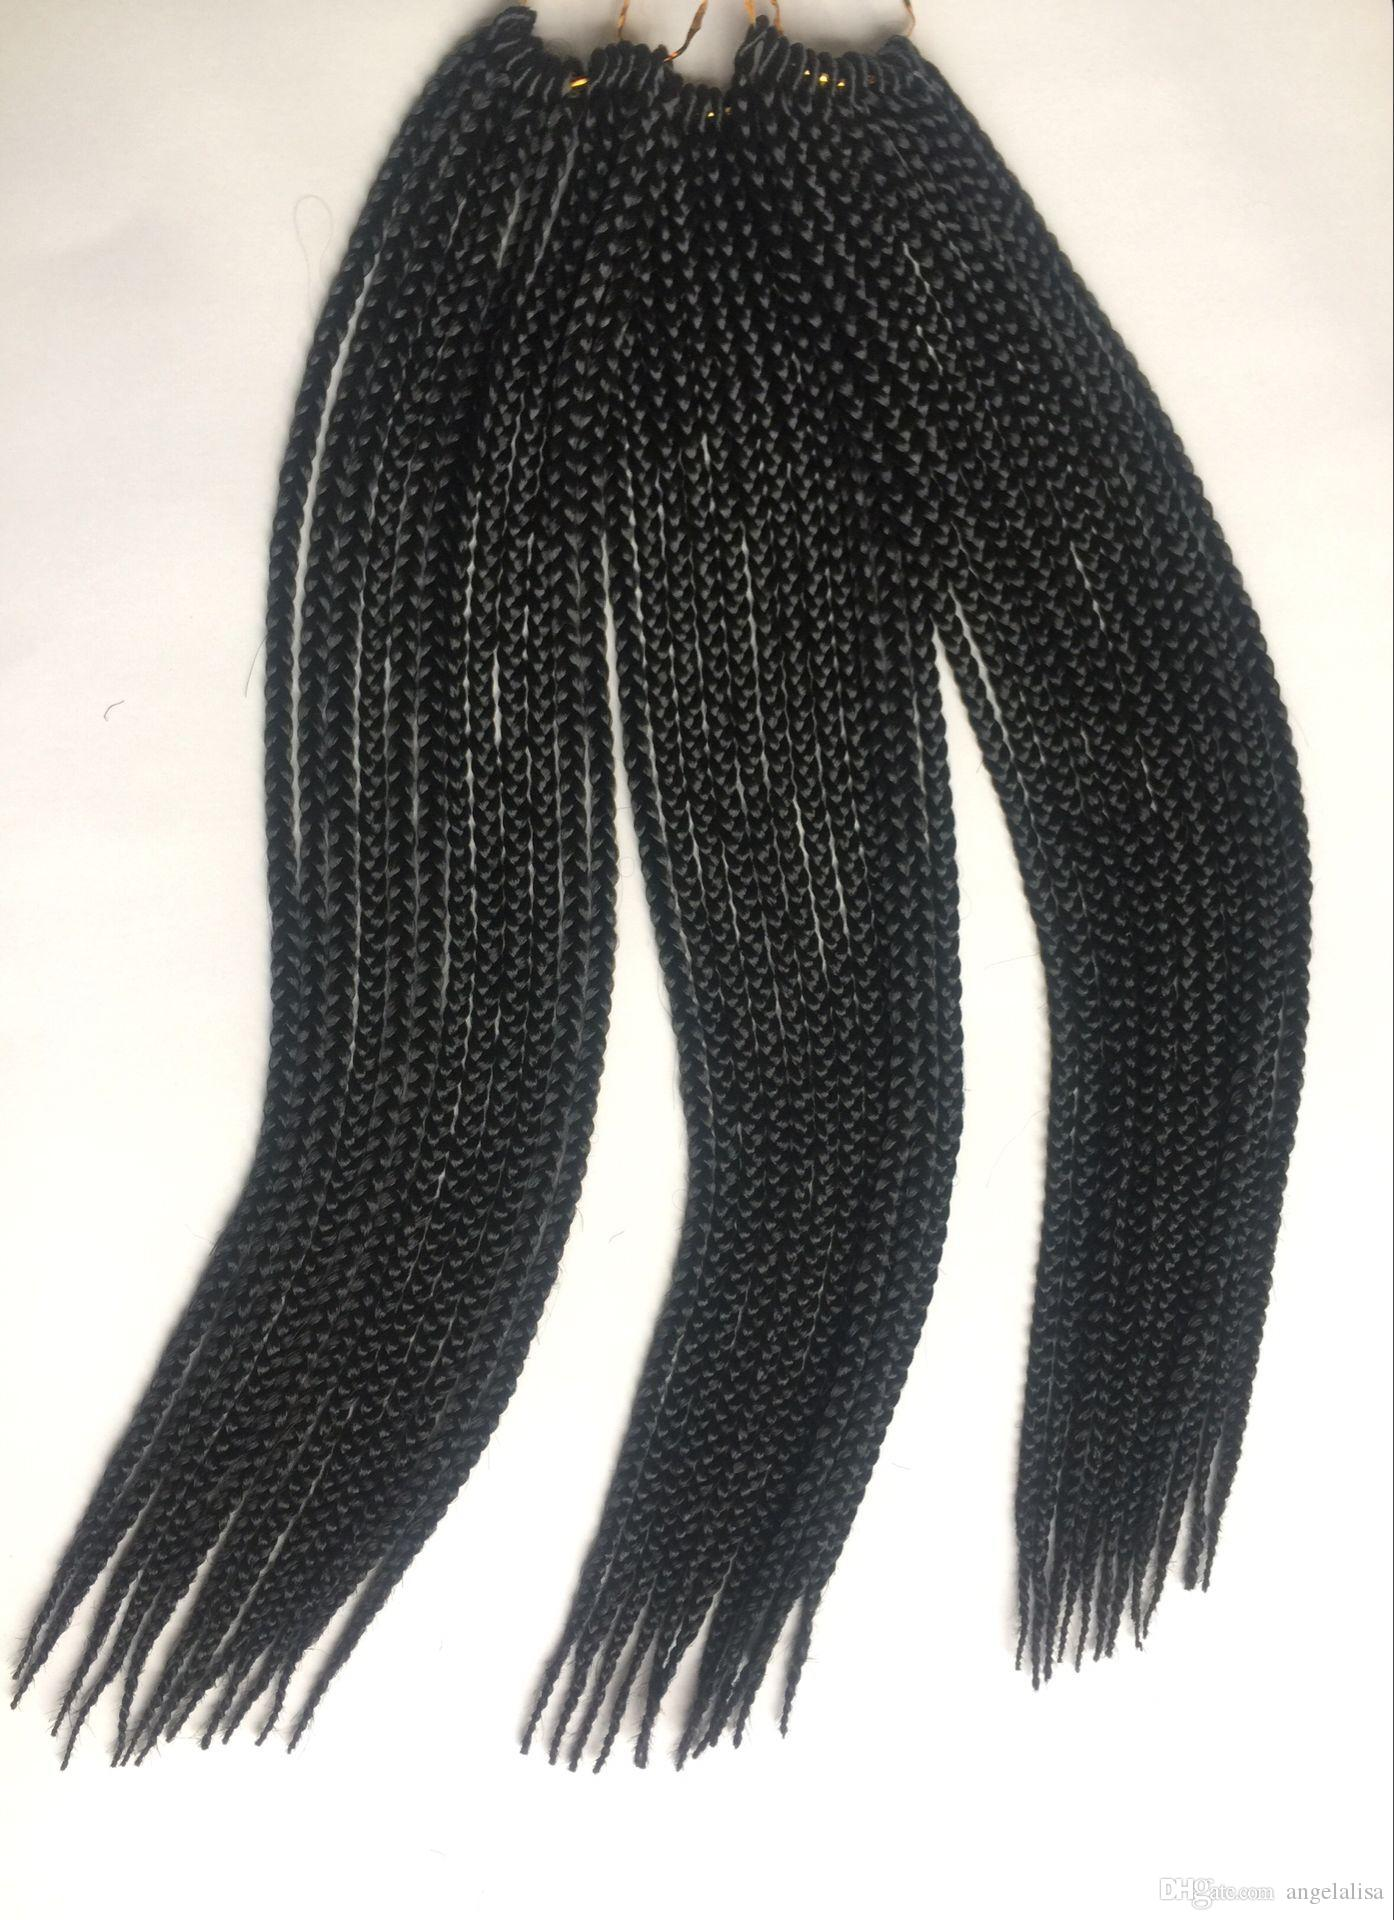 China Cheap Brazilian Hair With Closure Extensions Brazilian Body Wave Hair With 4x4 Lace Closure Unprocessed Remy human hair ponytail